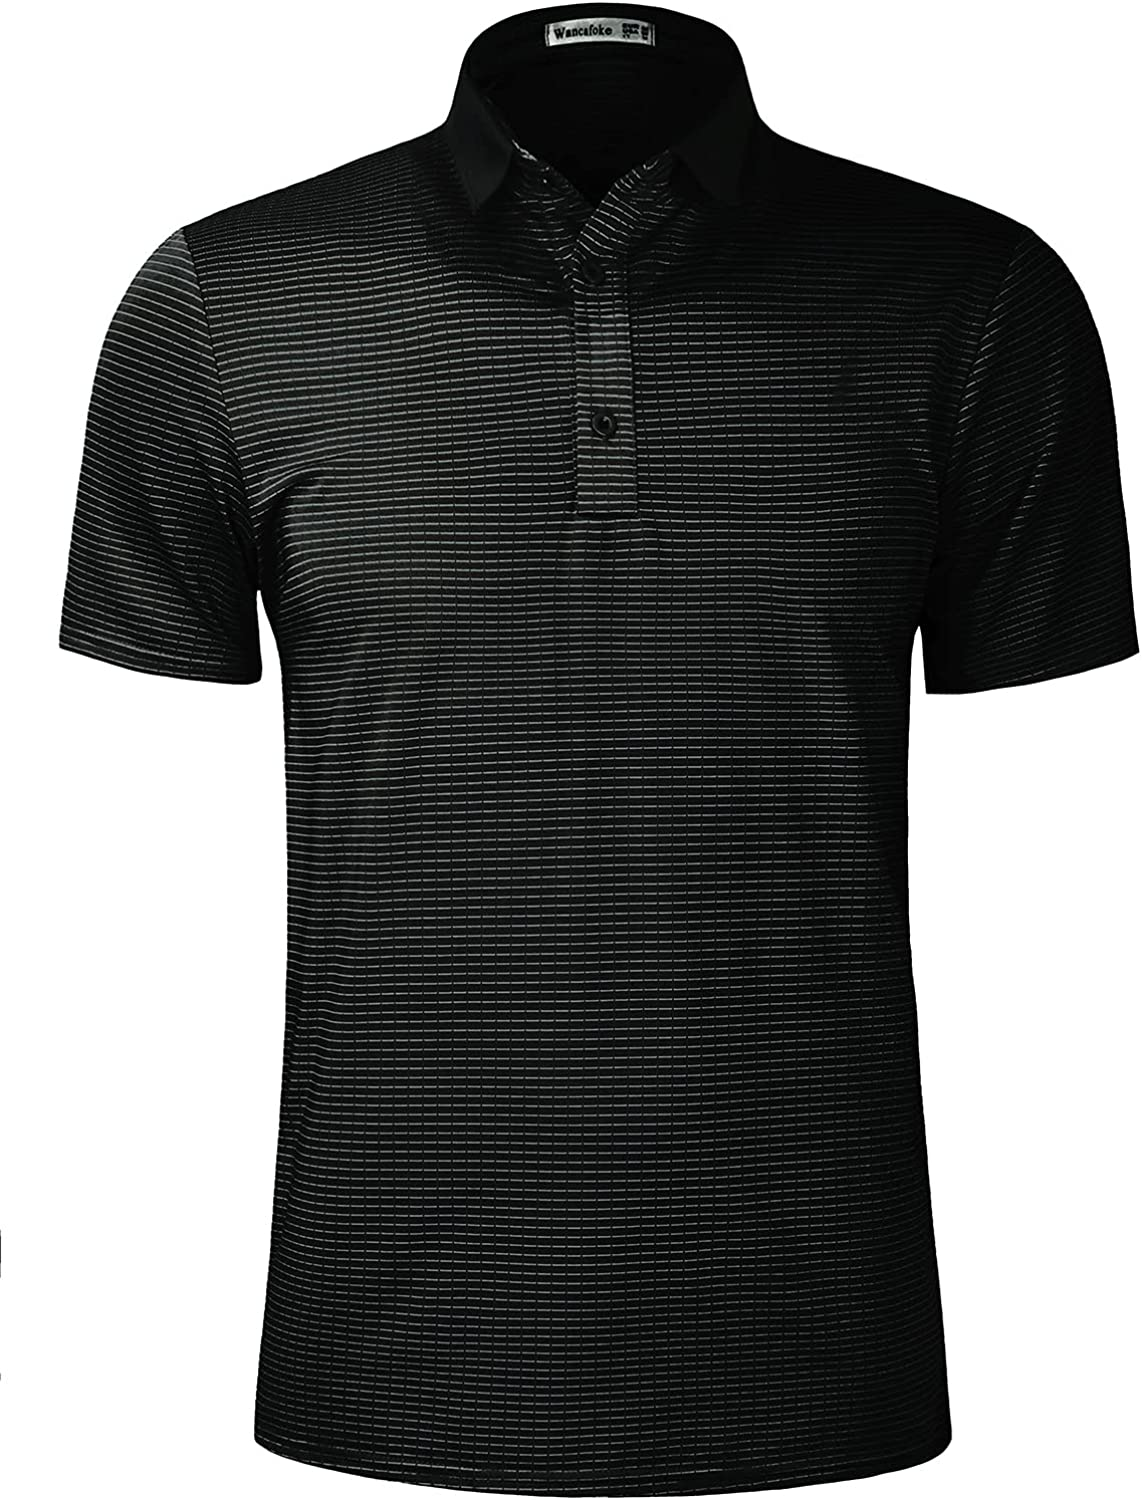 Special sale item Wancafoke Mens Striped Performance Golf security Shirts Shor Dry Polo Fit